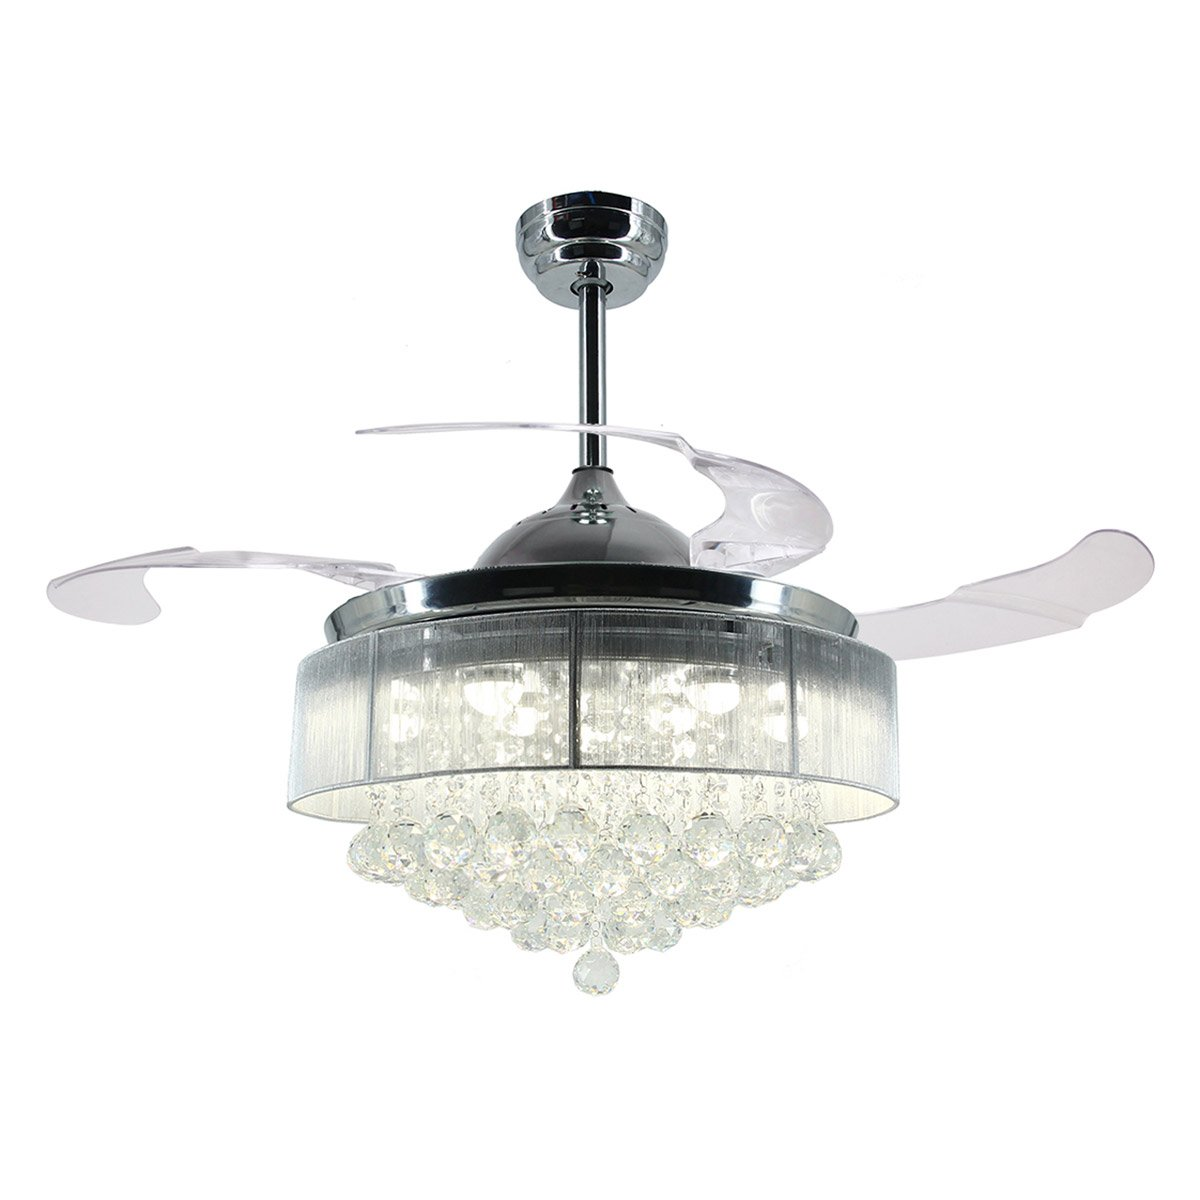 Parrot Uncle Ceiling Fans with Lights 42'' Modern LED Ceiling Fan Retractable Blades Crystal Chandelier Fan with Remote Control, 4000K Cool White, Not Dimmable, Chrome Finished